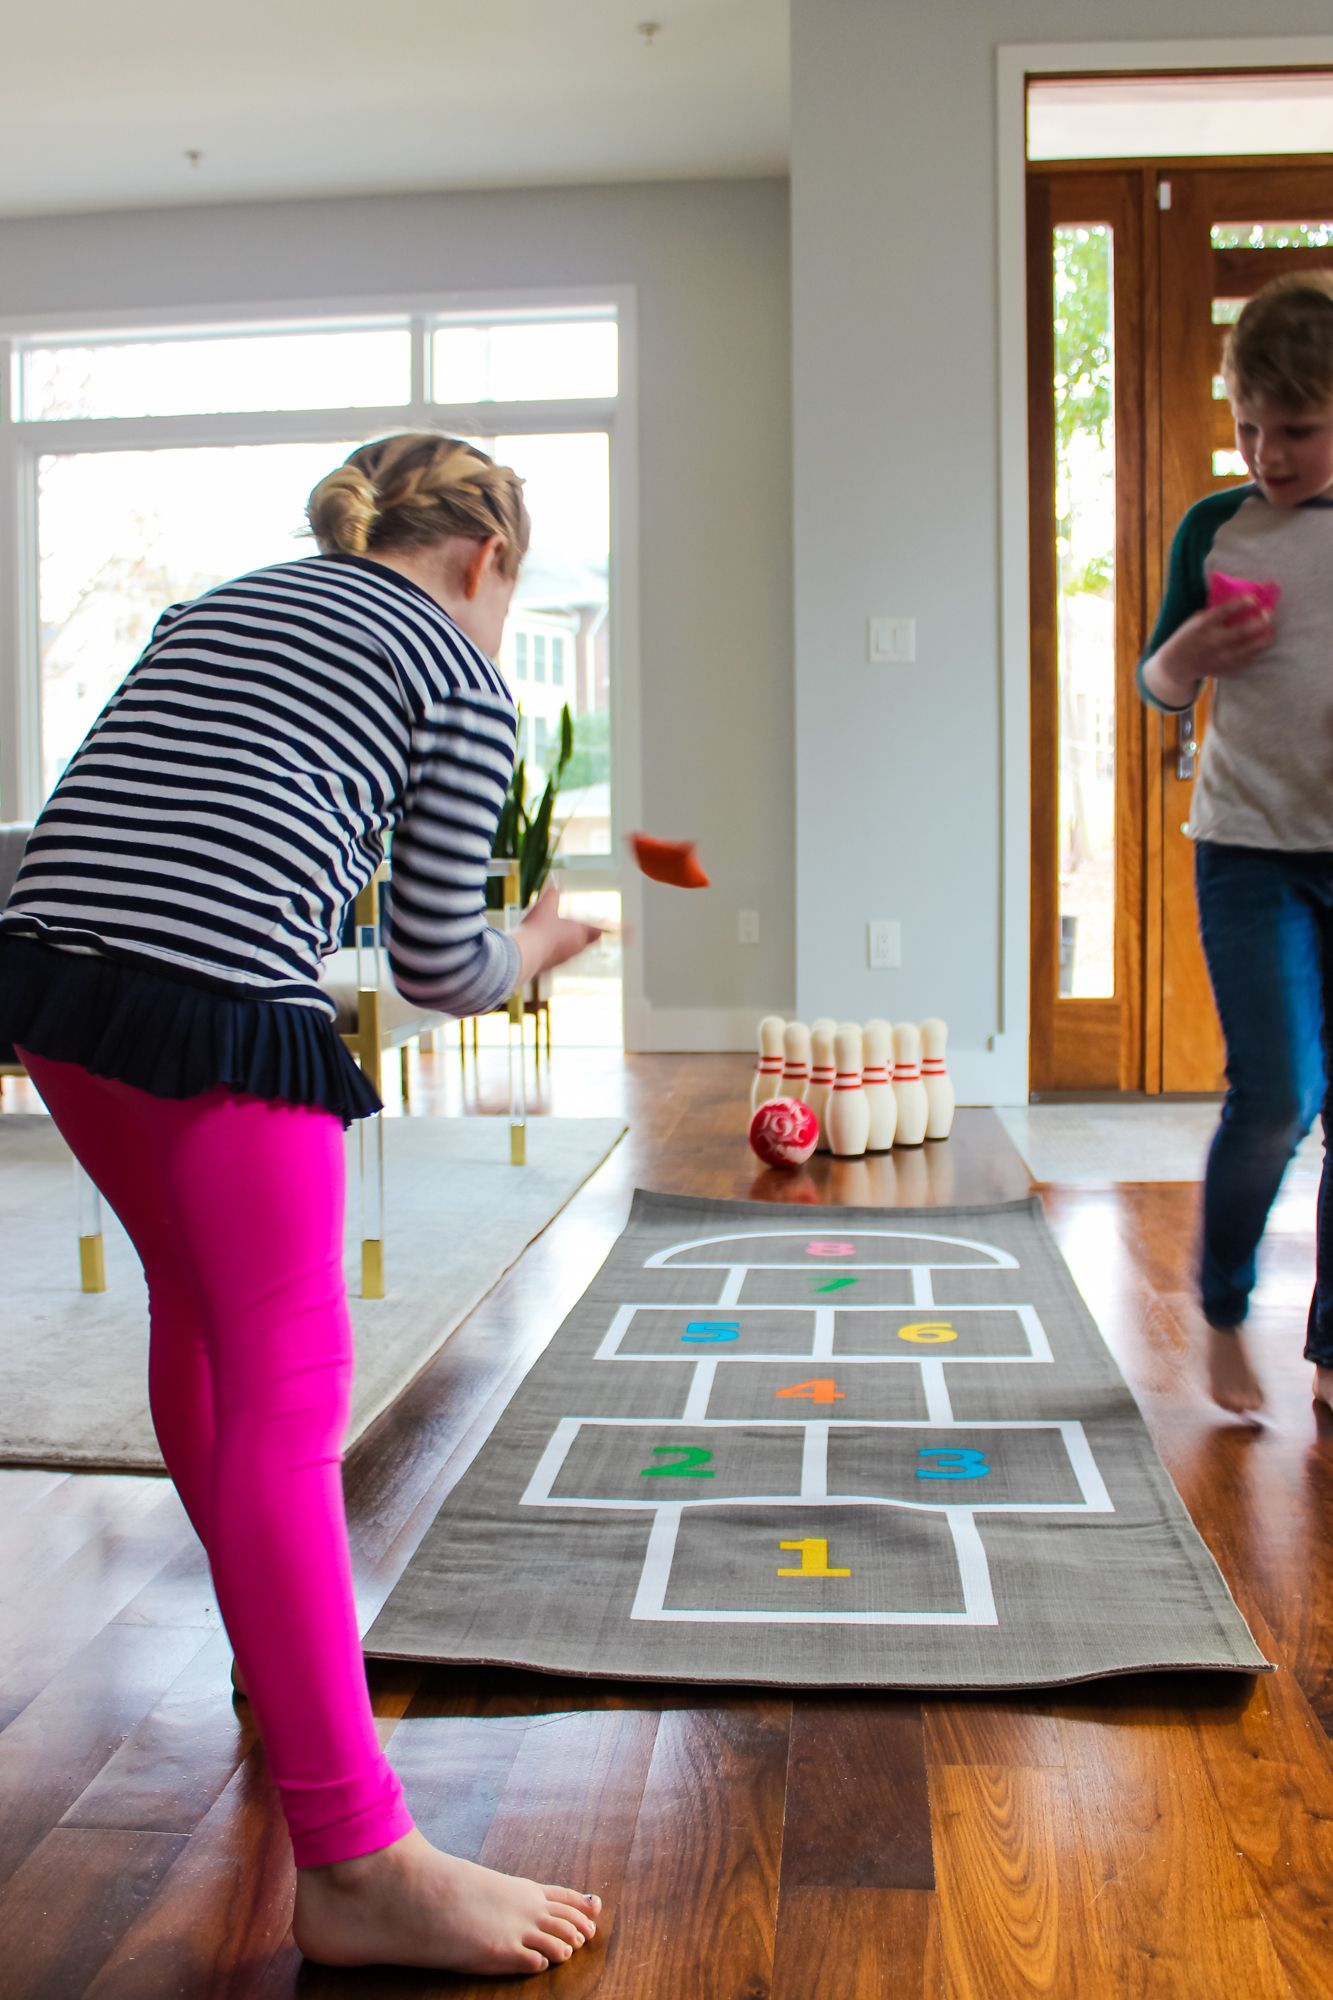 Staying Active Indoors Shop The Look Pinterest Games Indoor intended for 12 Genius Concepts of How to Make Living Room Lanes Bowling Set